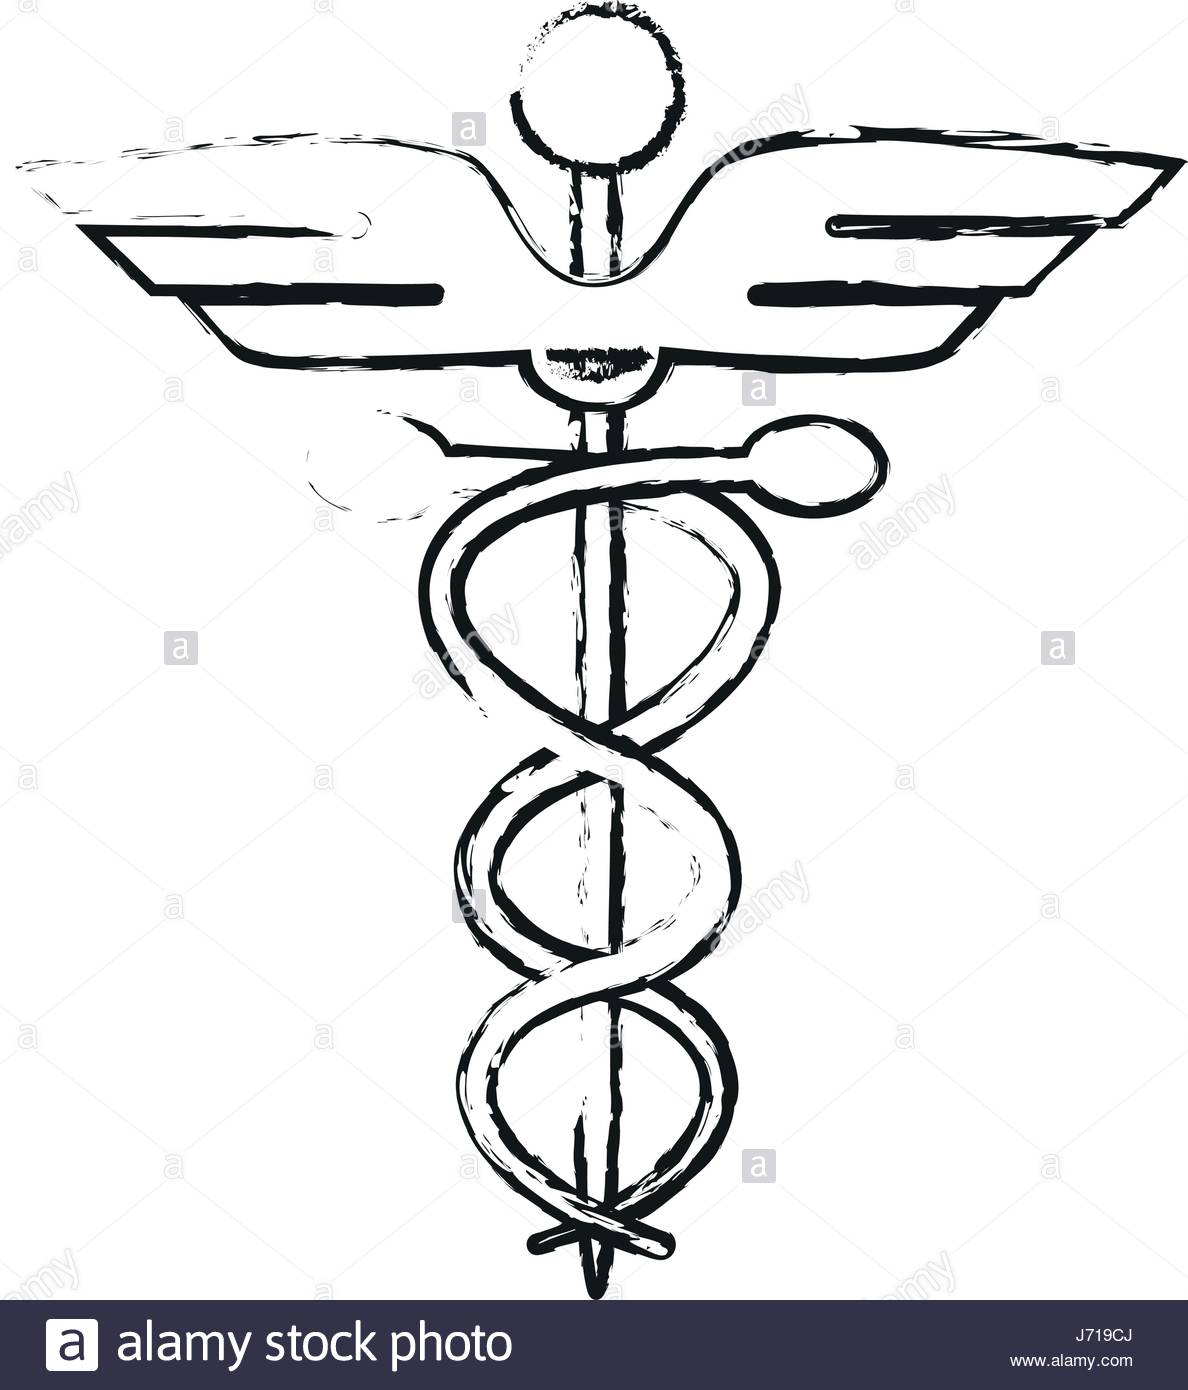 1188x1390 Monochrome Blurred Silhouette Of Cartoon Health Symbol